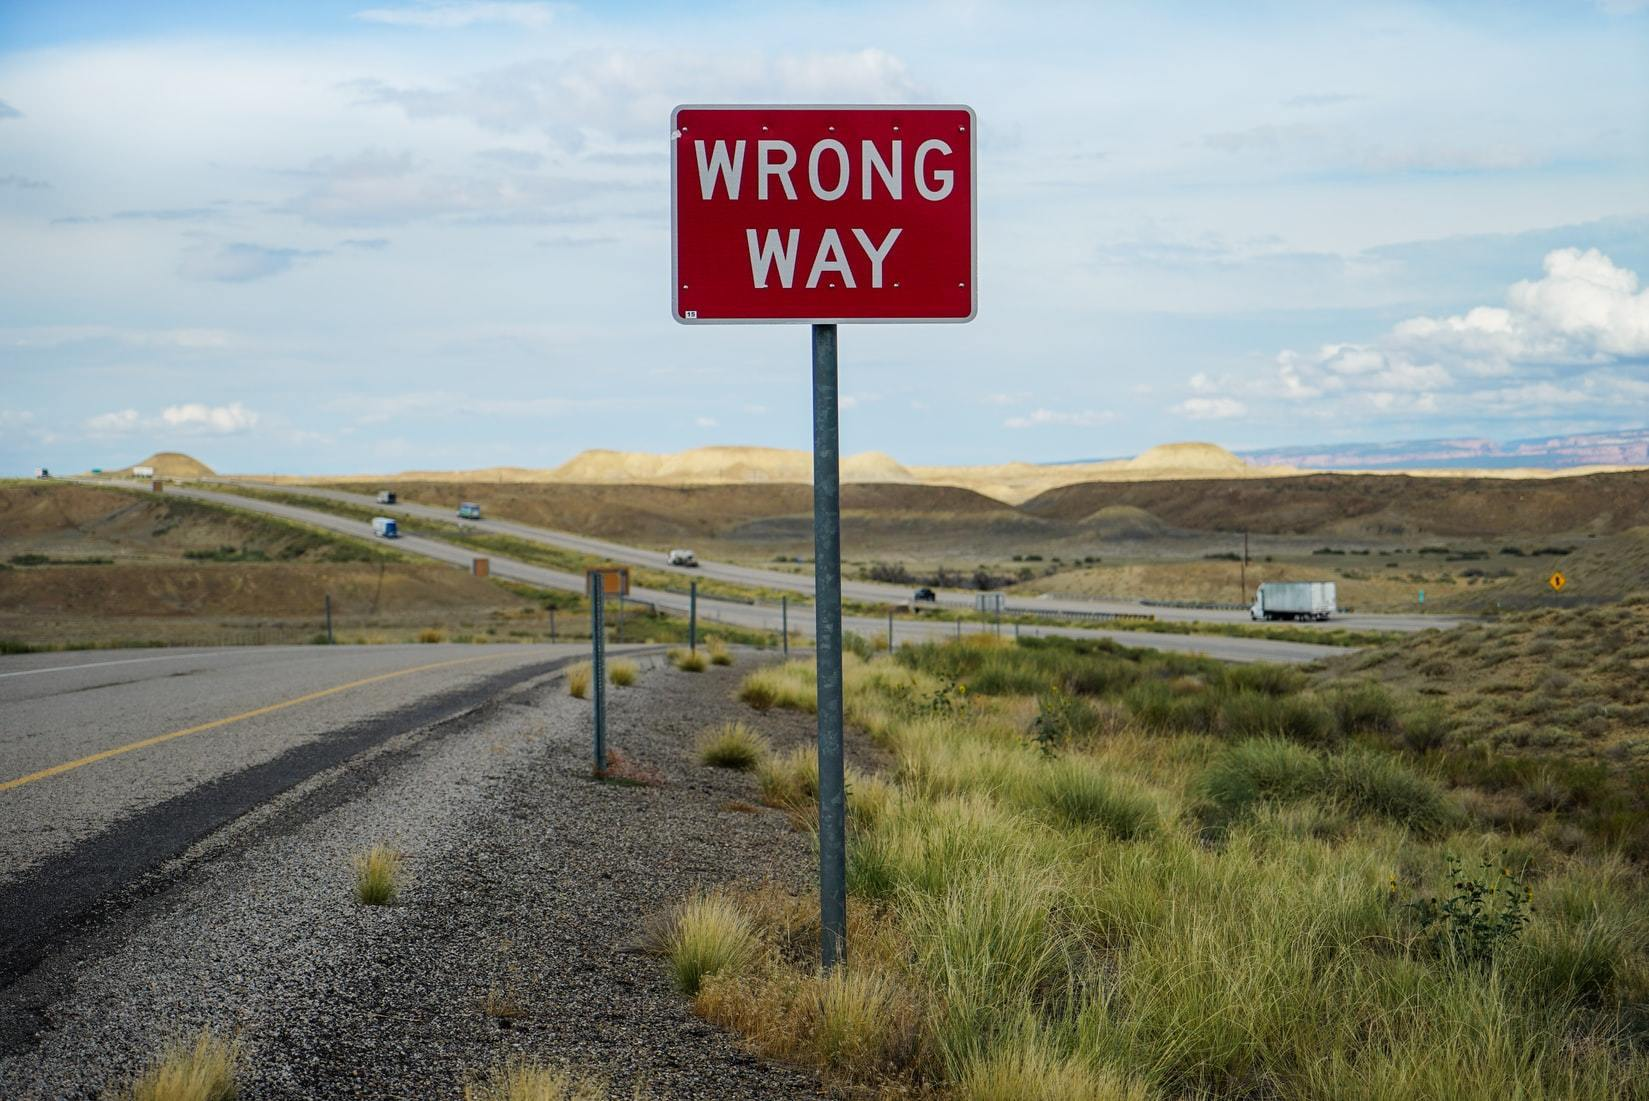 The problem with talking about right and wrong